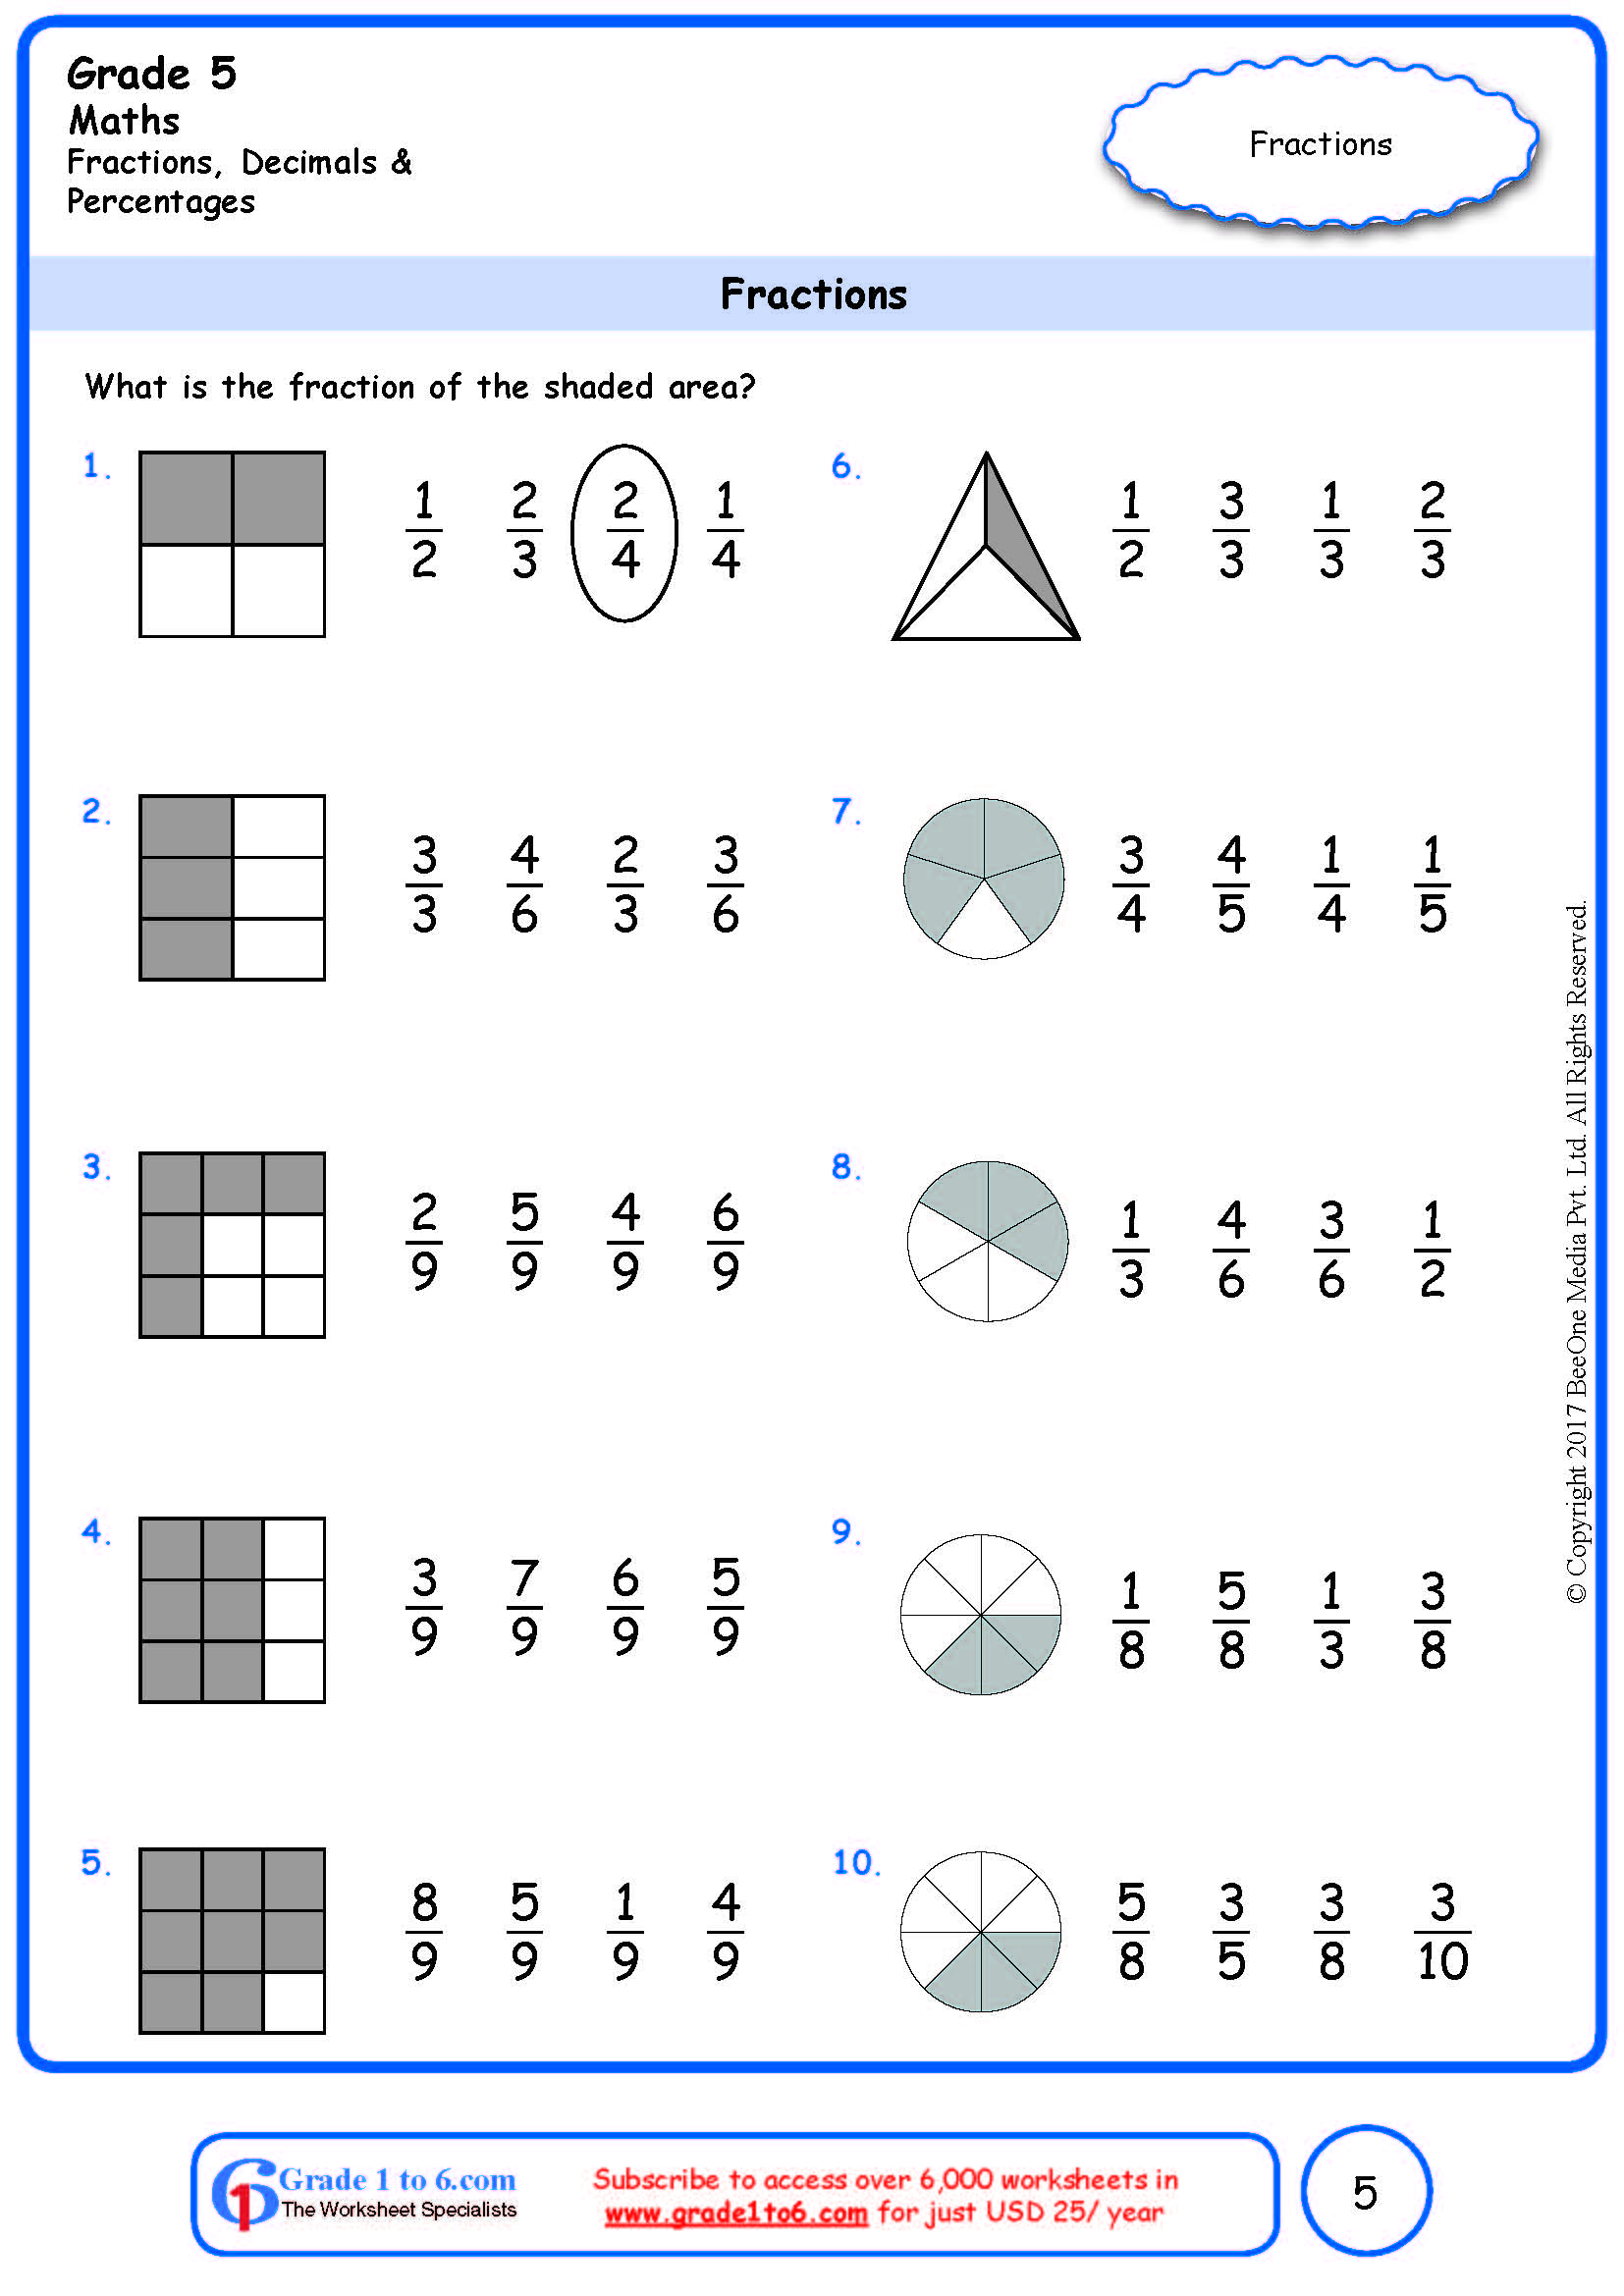 hight resolution of Grade 5 Fraction of Shaded Area Worksheets www.grade1to6.com